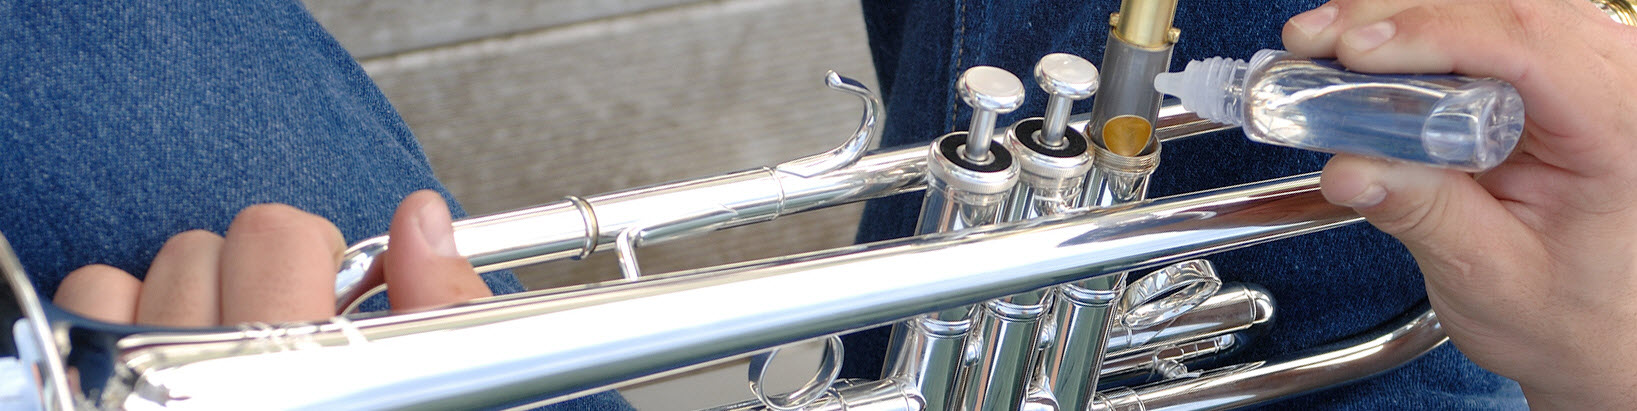 Why Use Synthetic Valve Oil on Your Brass Instruments?